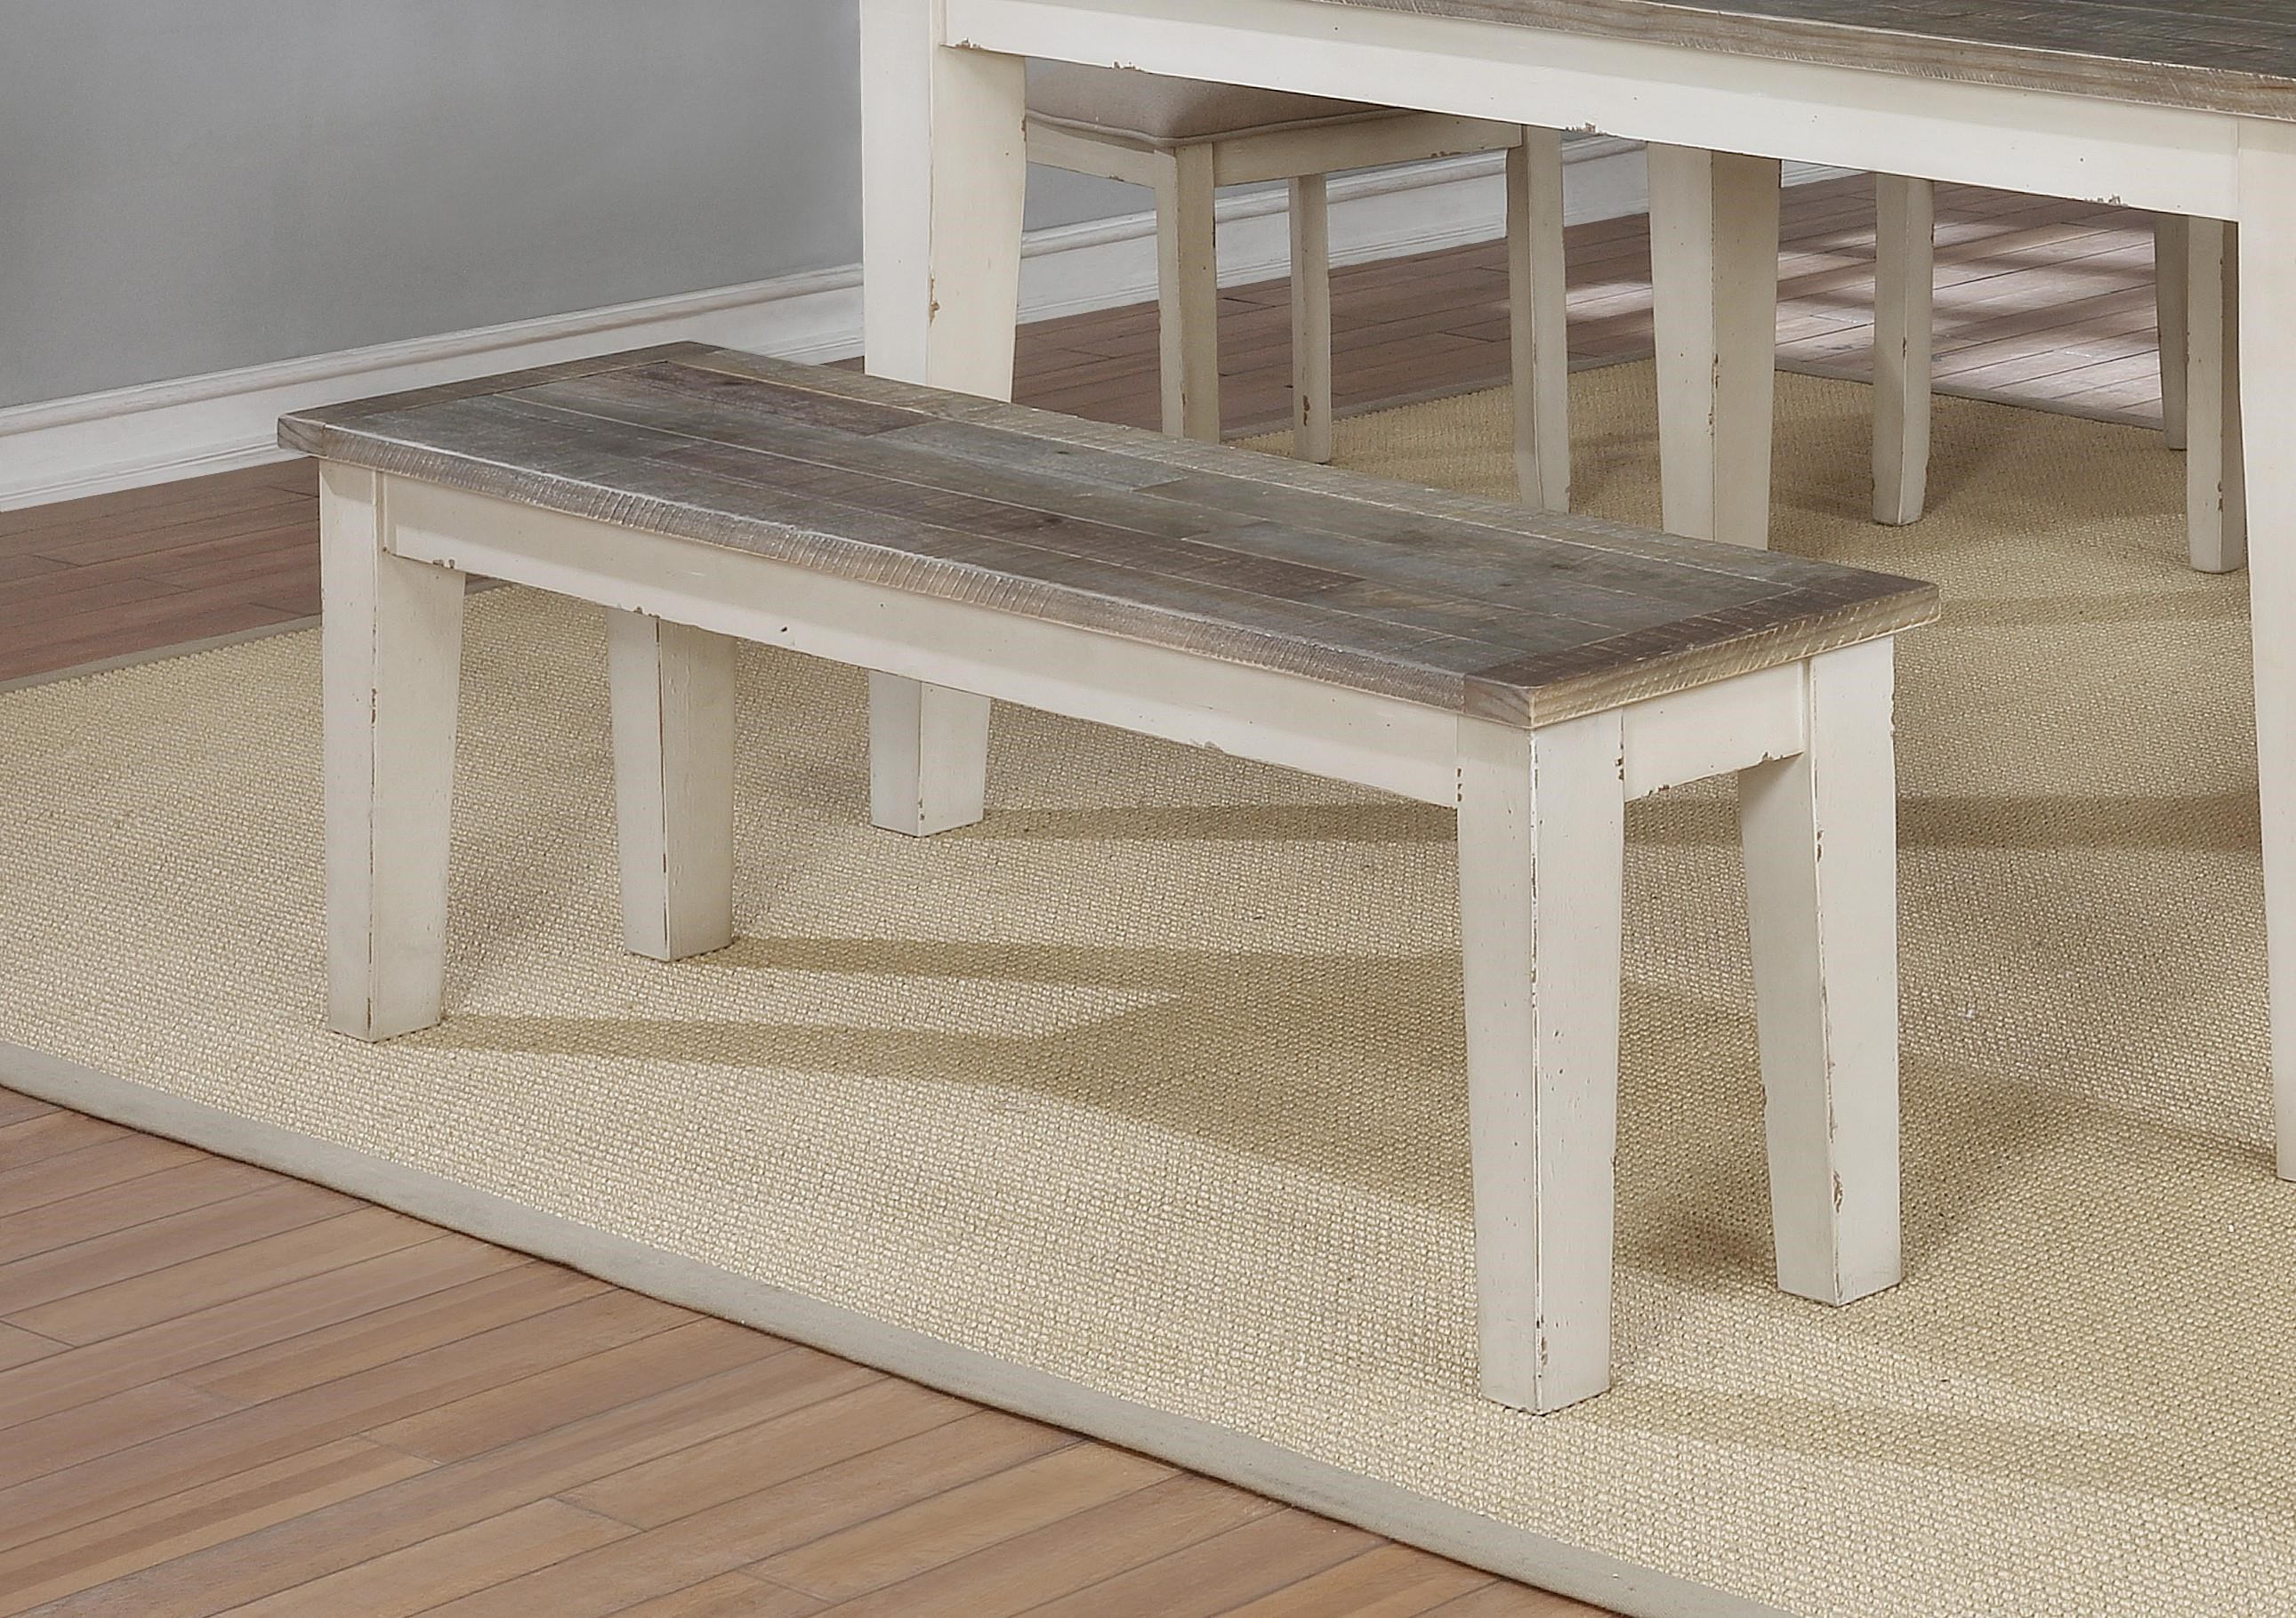 C1855Dwht-brn Dining Bench by Lifestyle at Furniture Fair - North Carolina